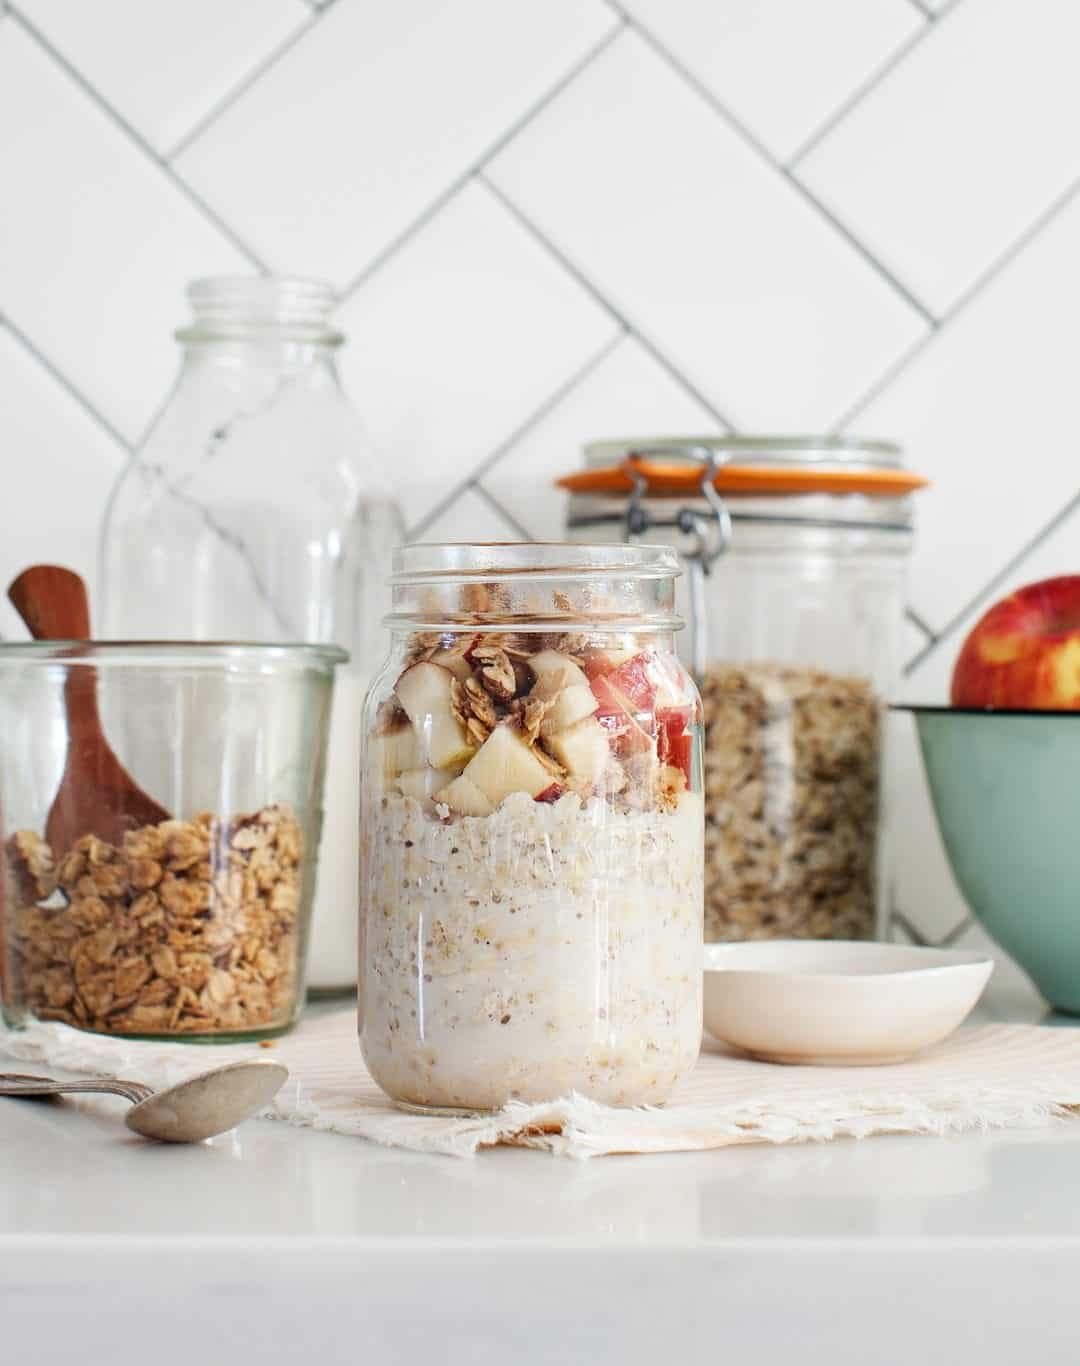 Apple Cinnamon Crunch Overnight Oats